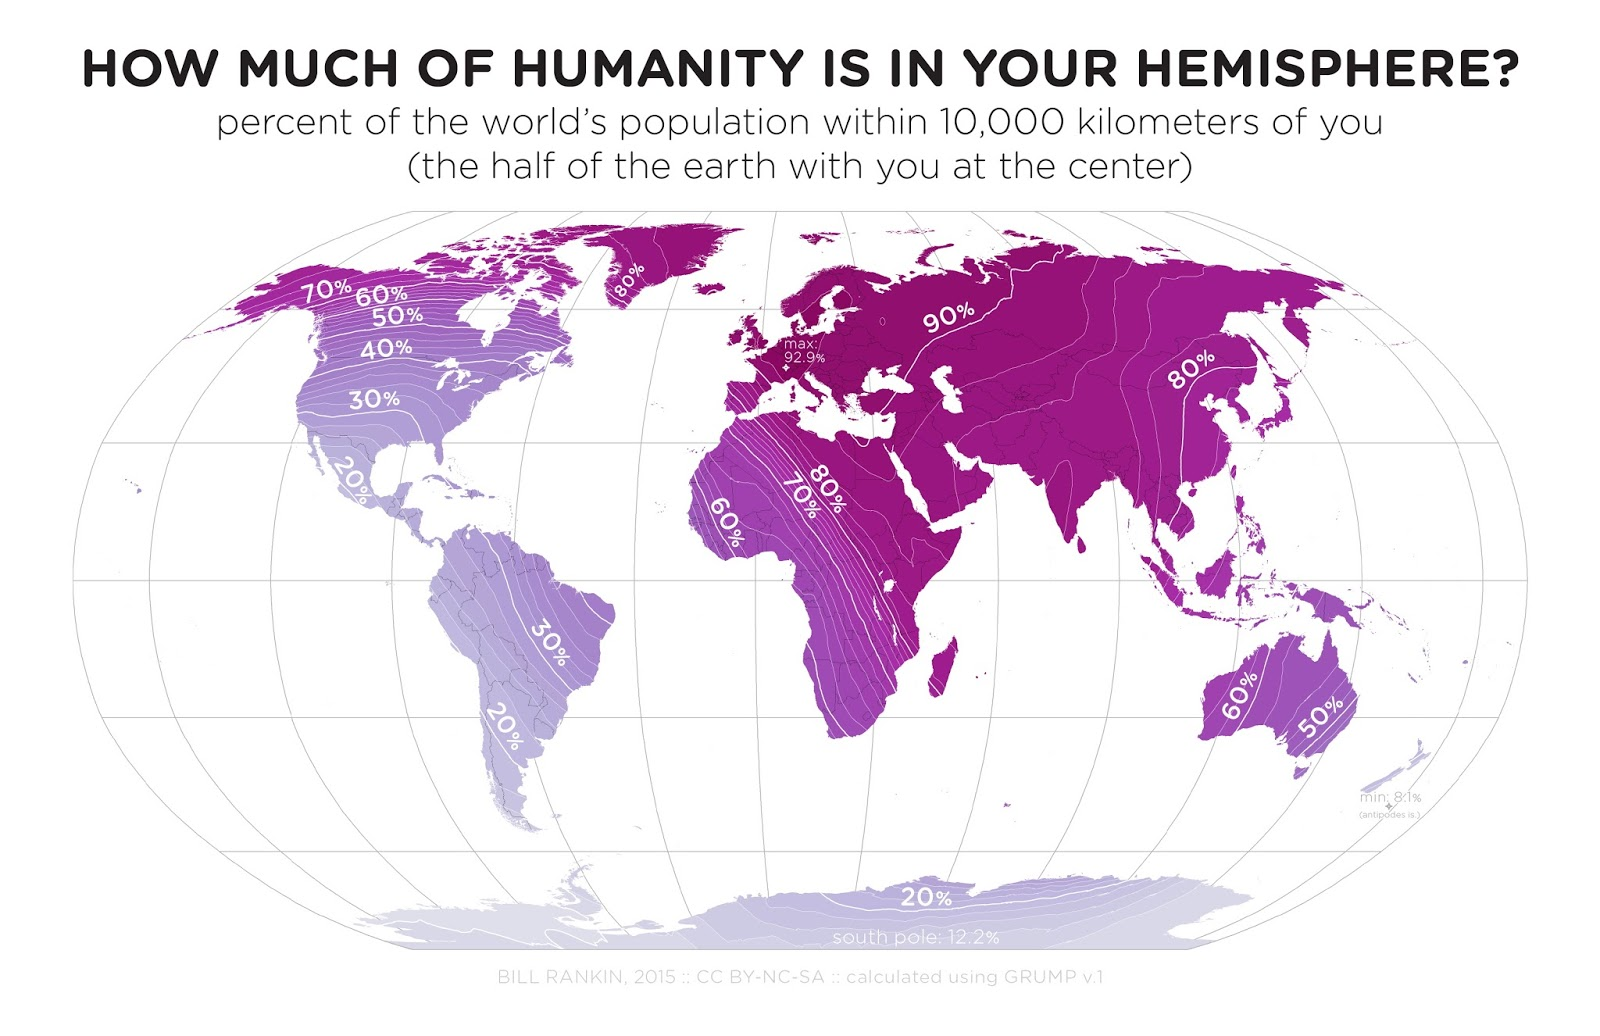 How much of humanity is in your hemisphere?